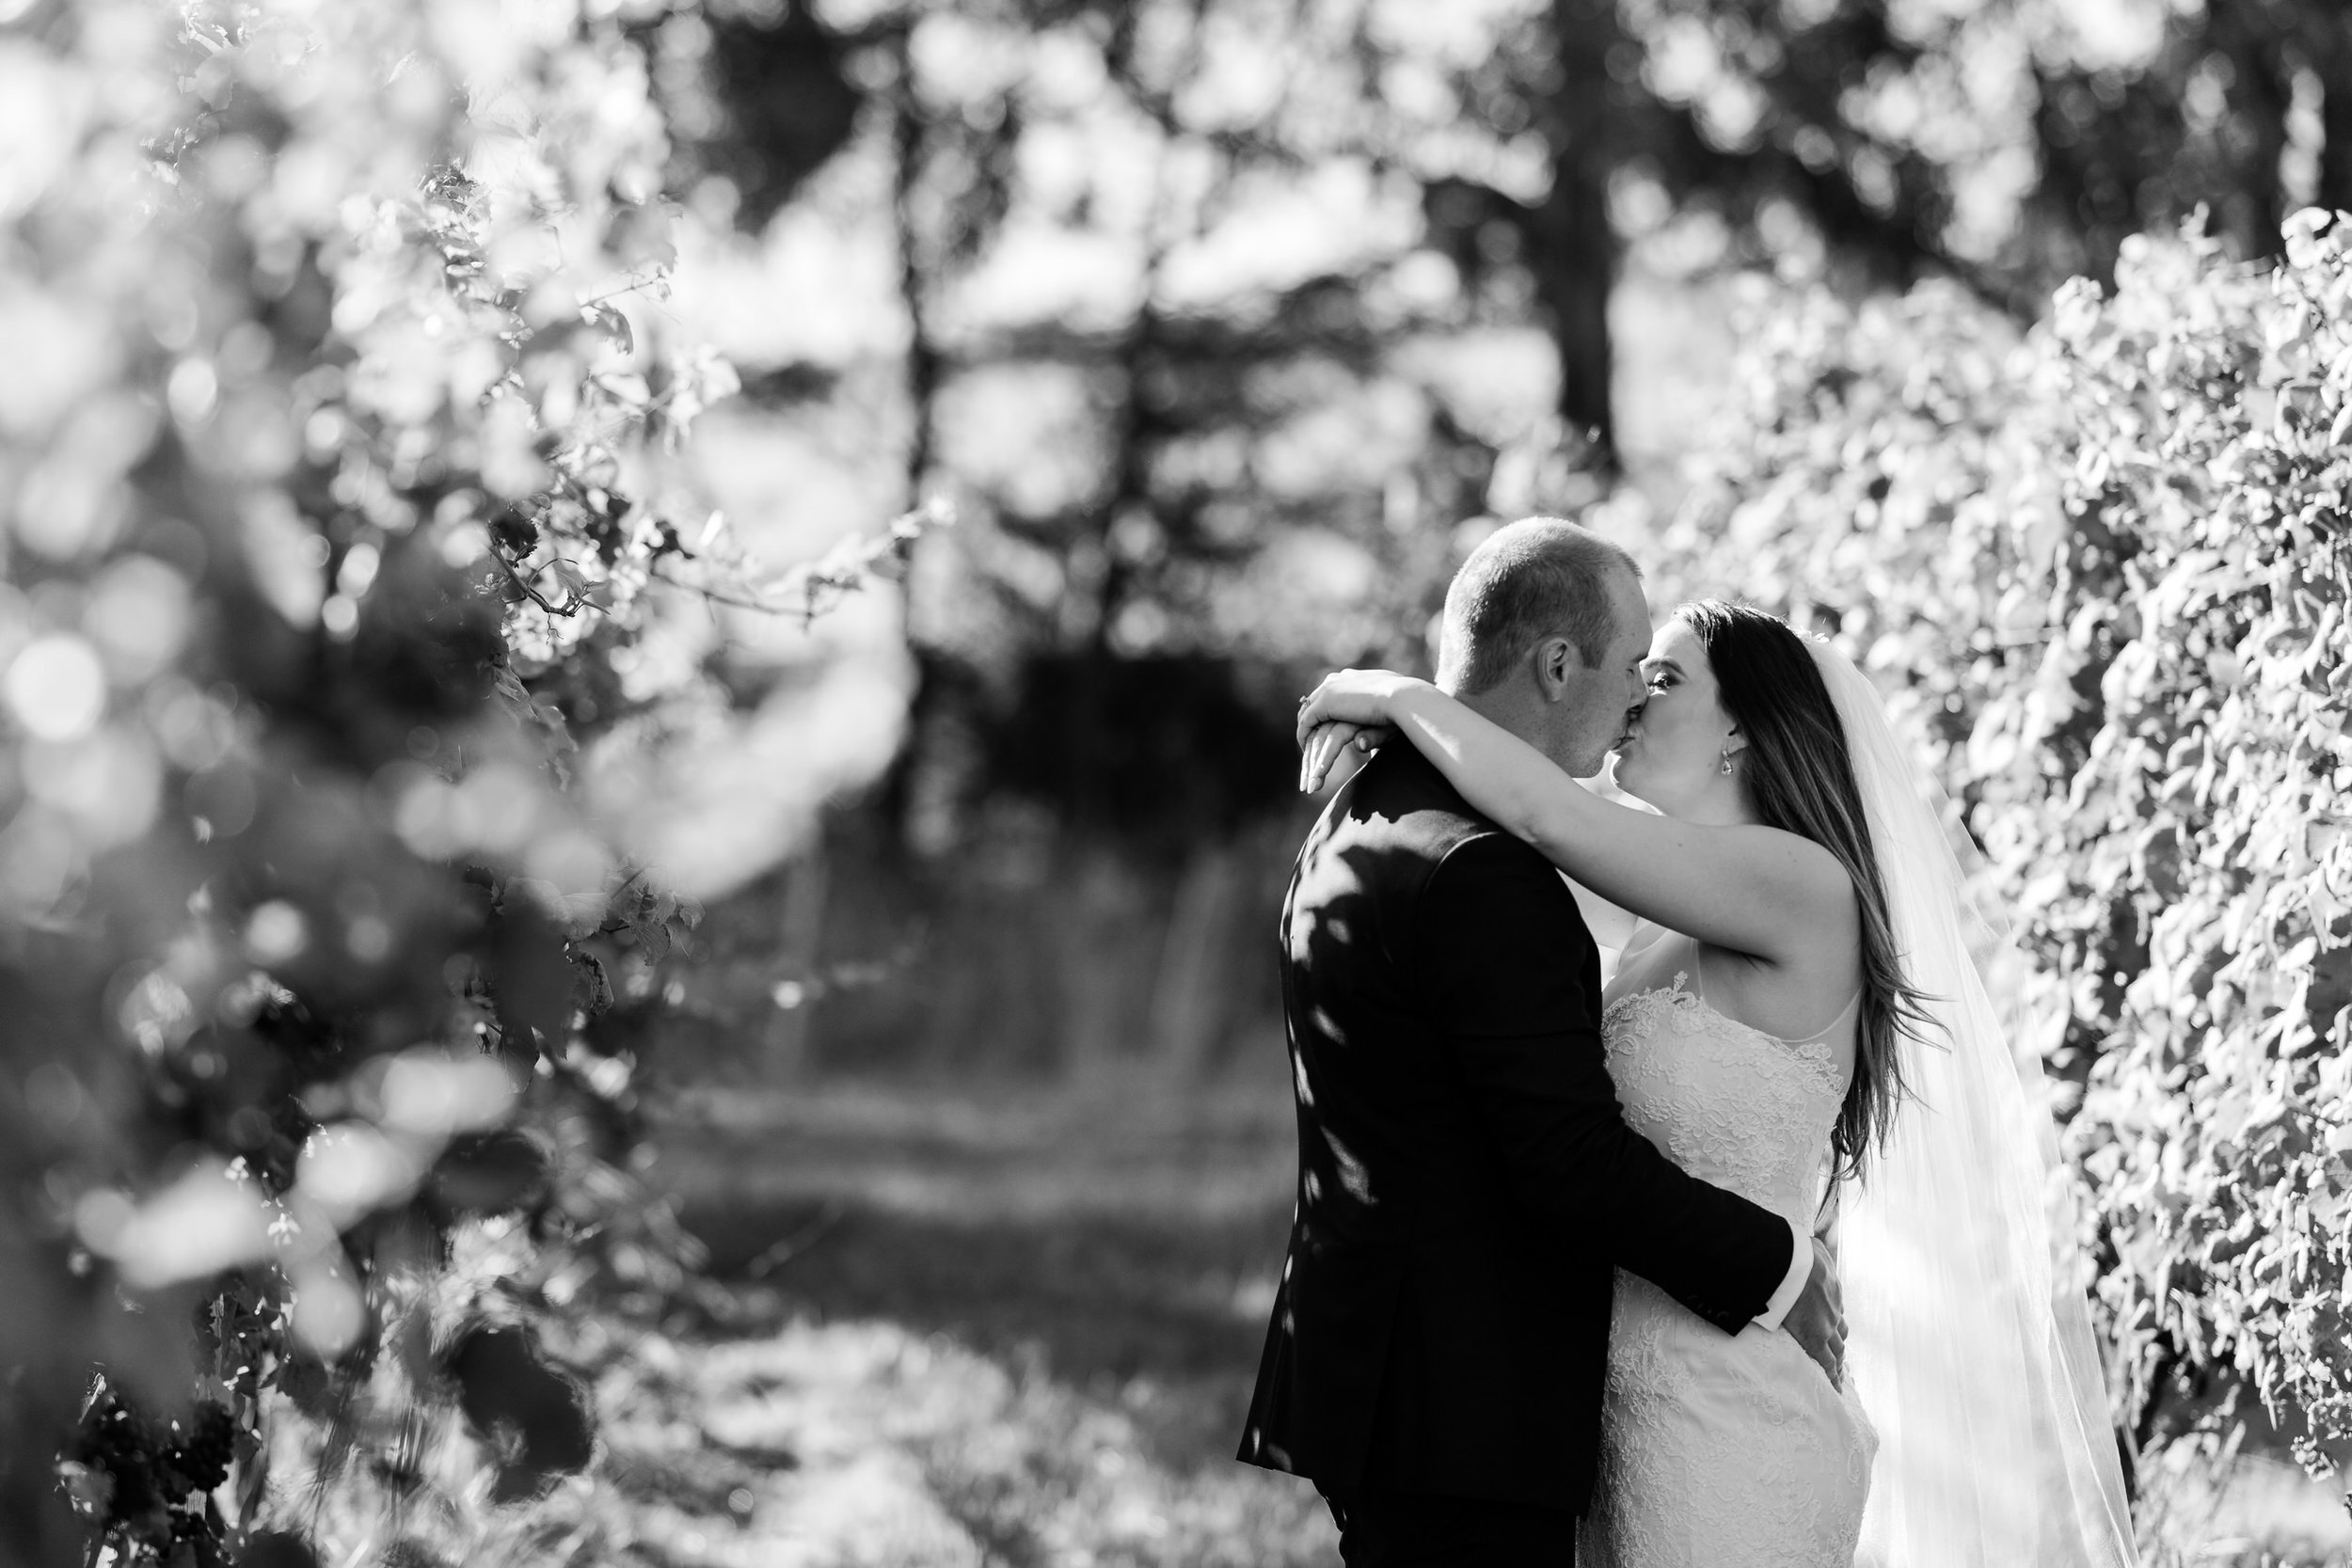 Justin_And_Jim_Photography_Balgownie_Winery_Wedding46.JPG